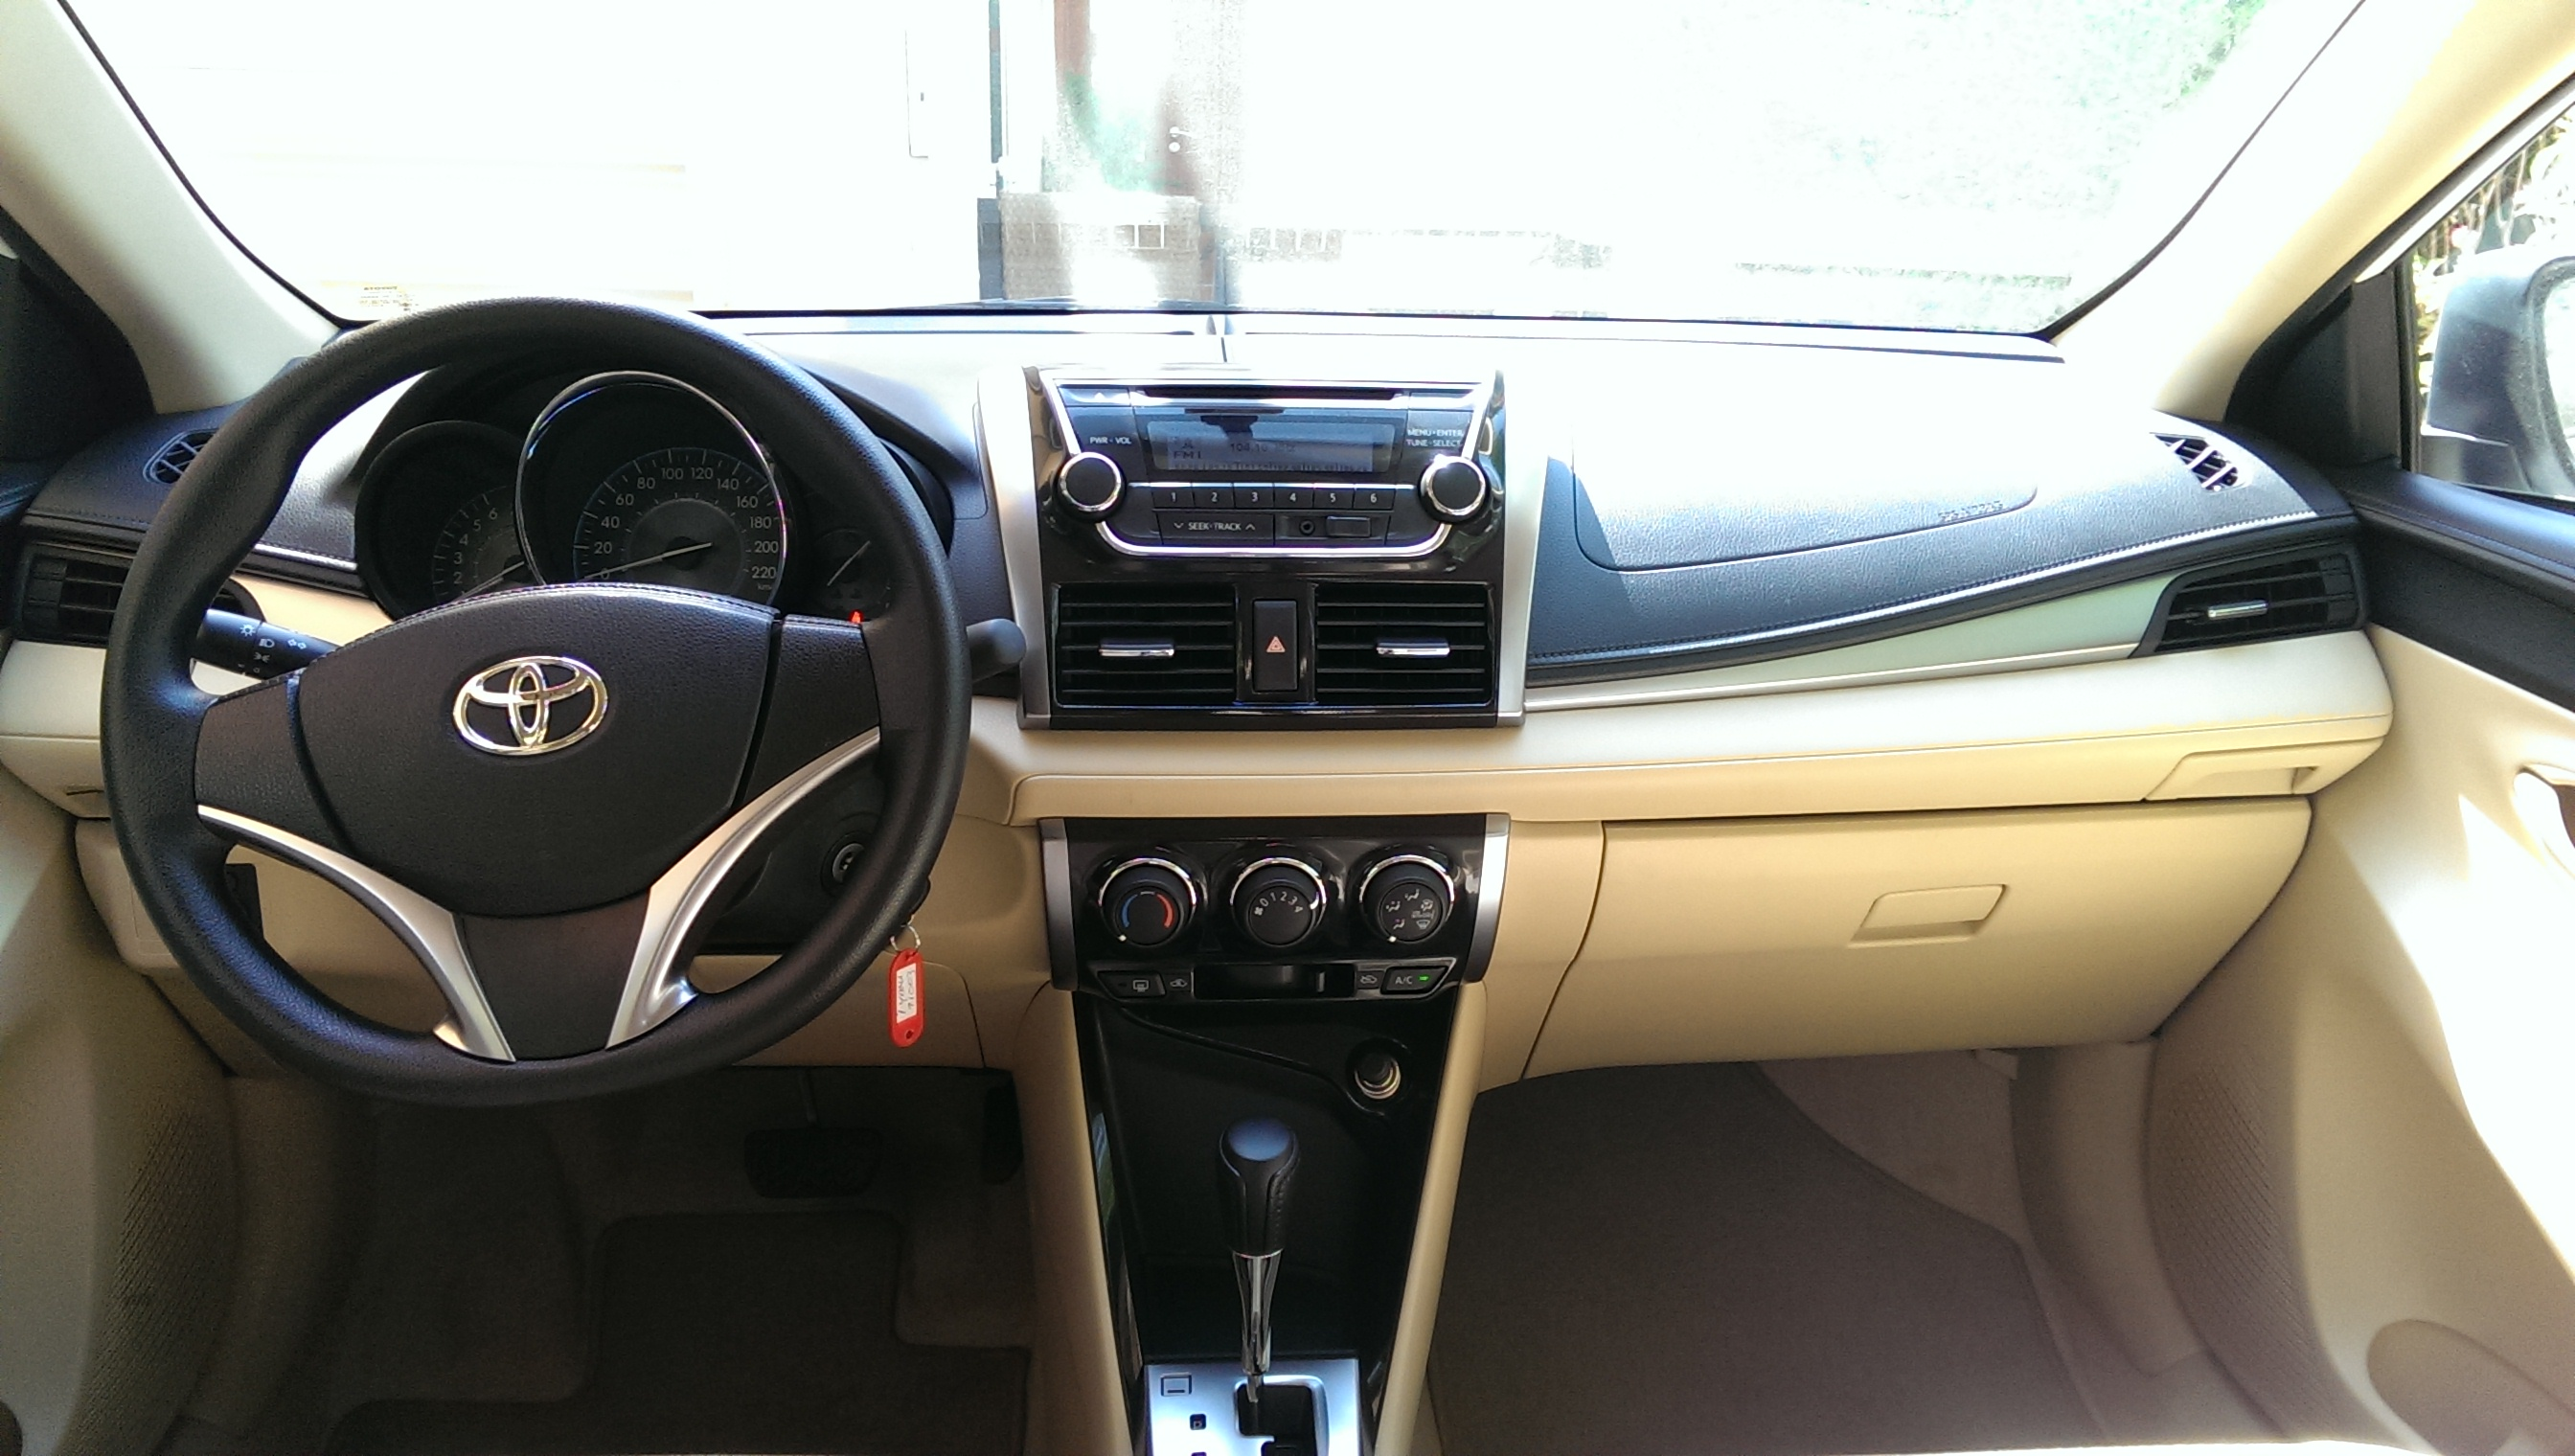 2014 toyota yaris 1 5 se uae version the common gearhead review the common gearhead. Black Bedroom Furniture Sets. Home Design Ideas